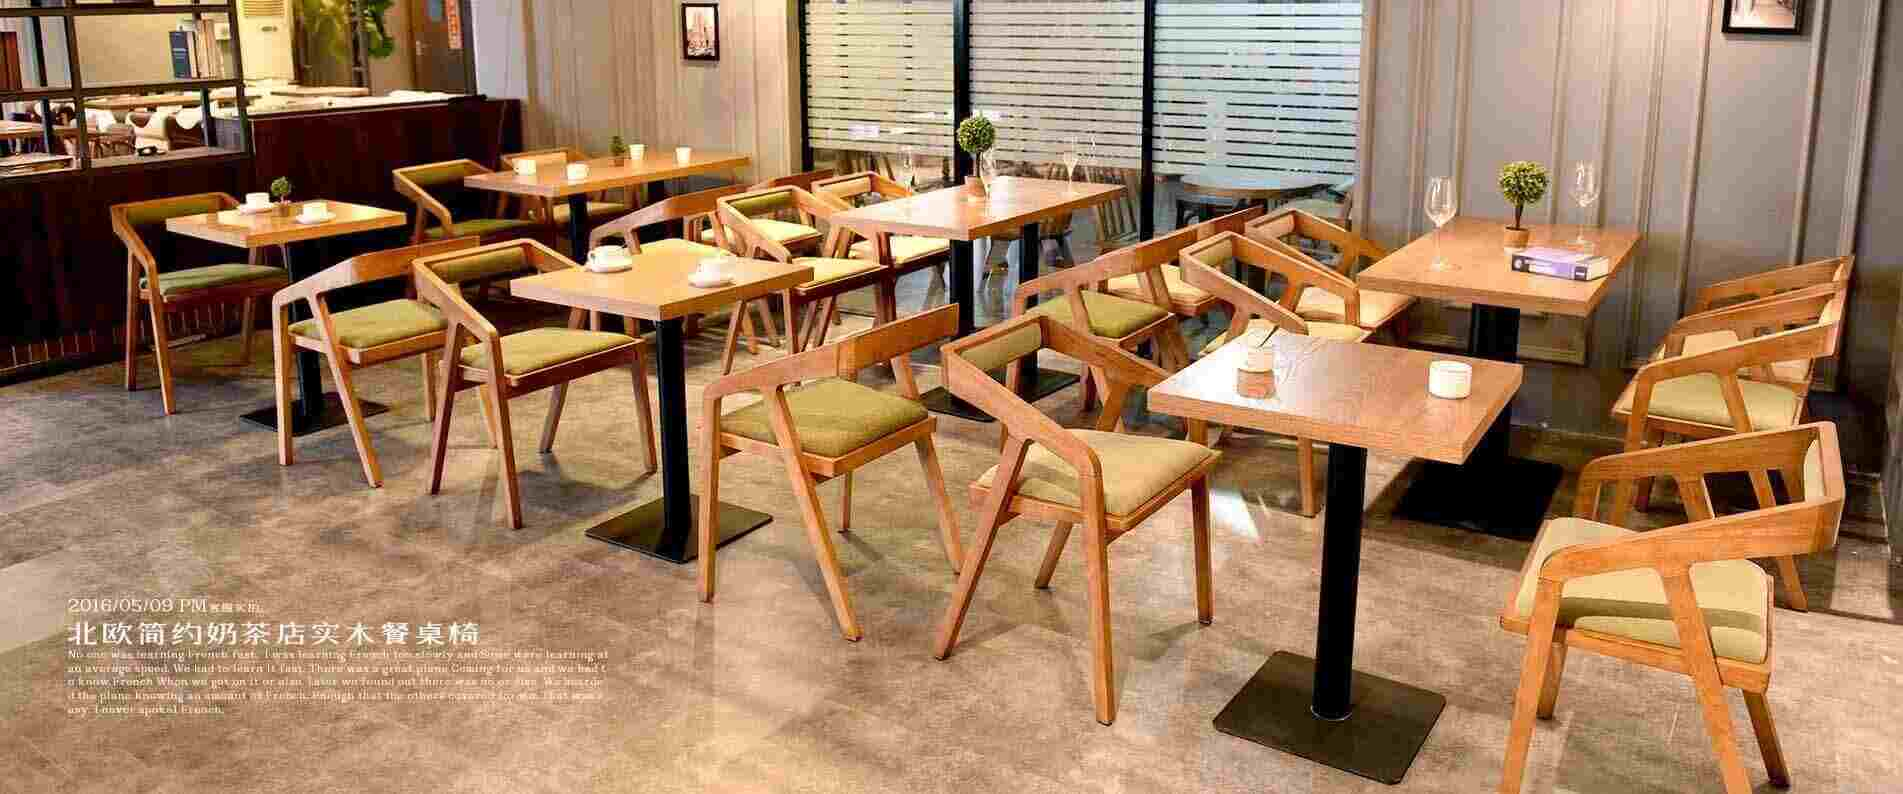 Iraq Restaurant furniture